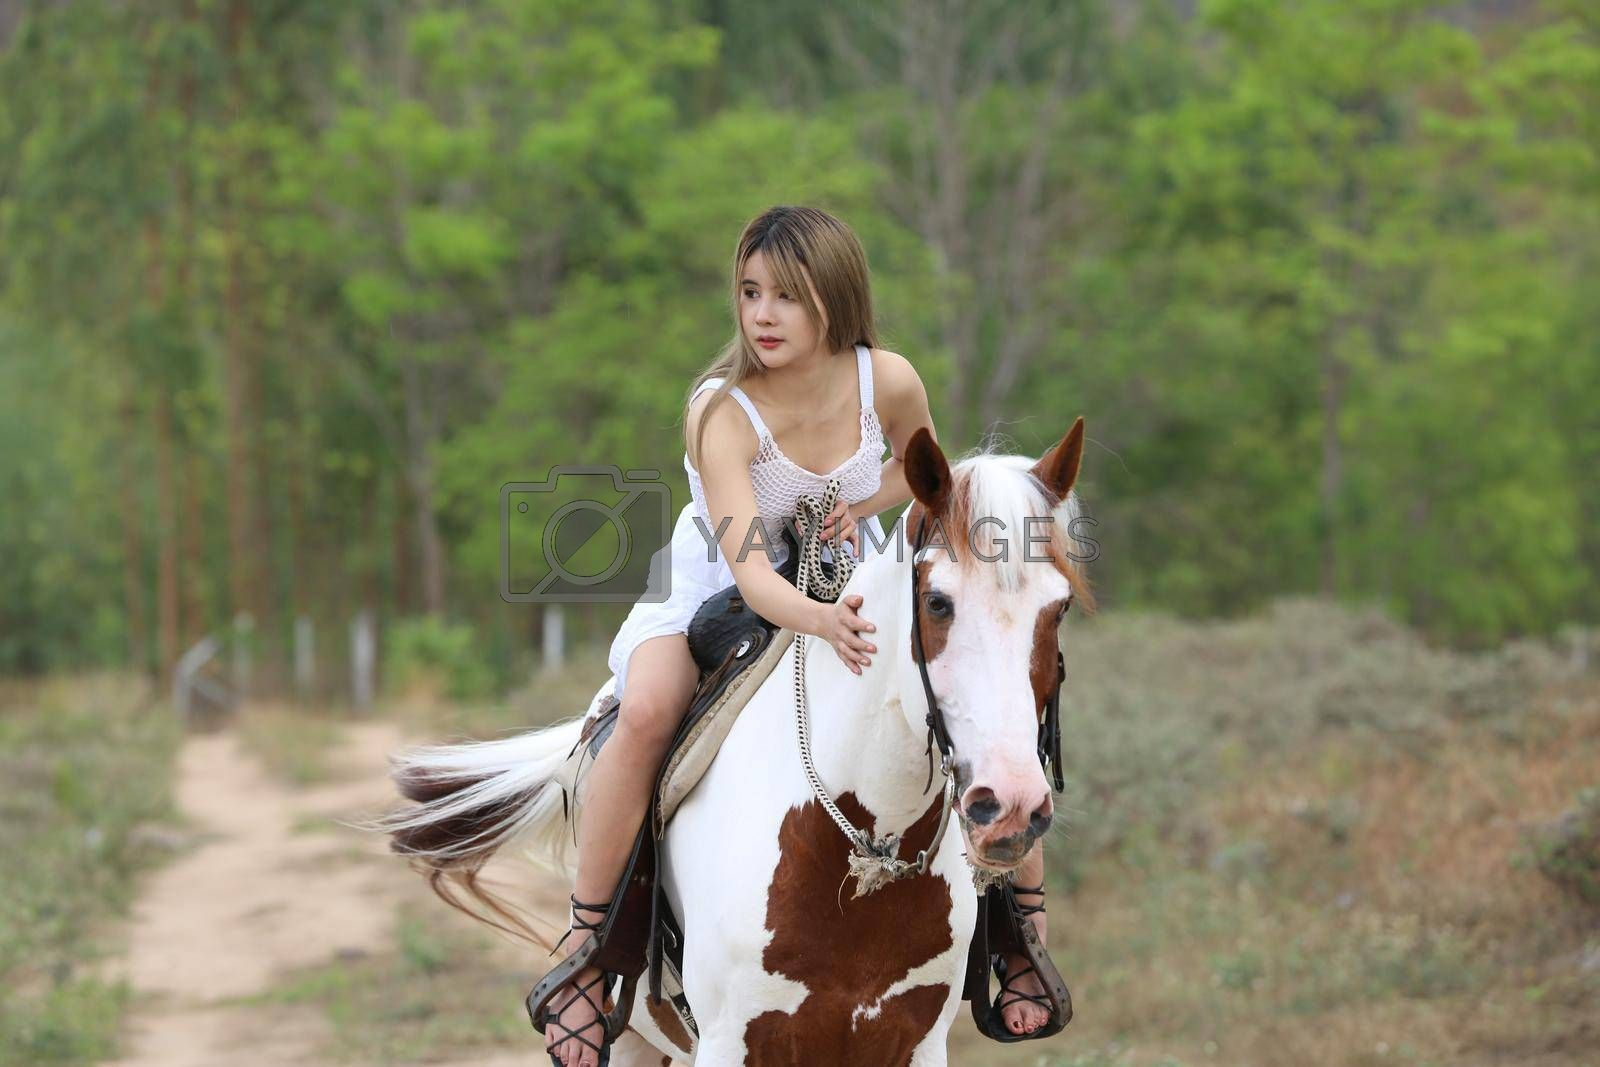 Royalty free image of Women on skirt dress Riding Horses On field landscape Against Sky During Sunset by chuanchai